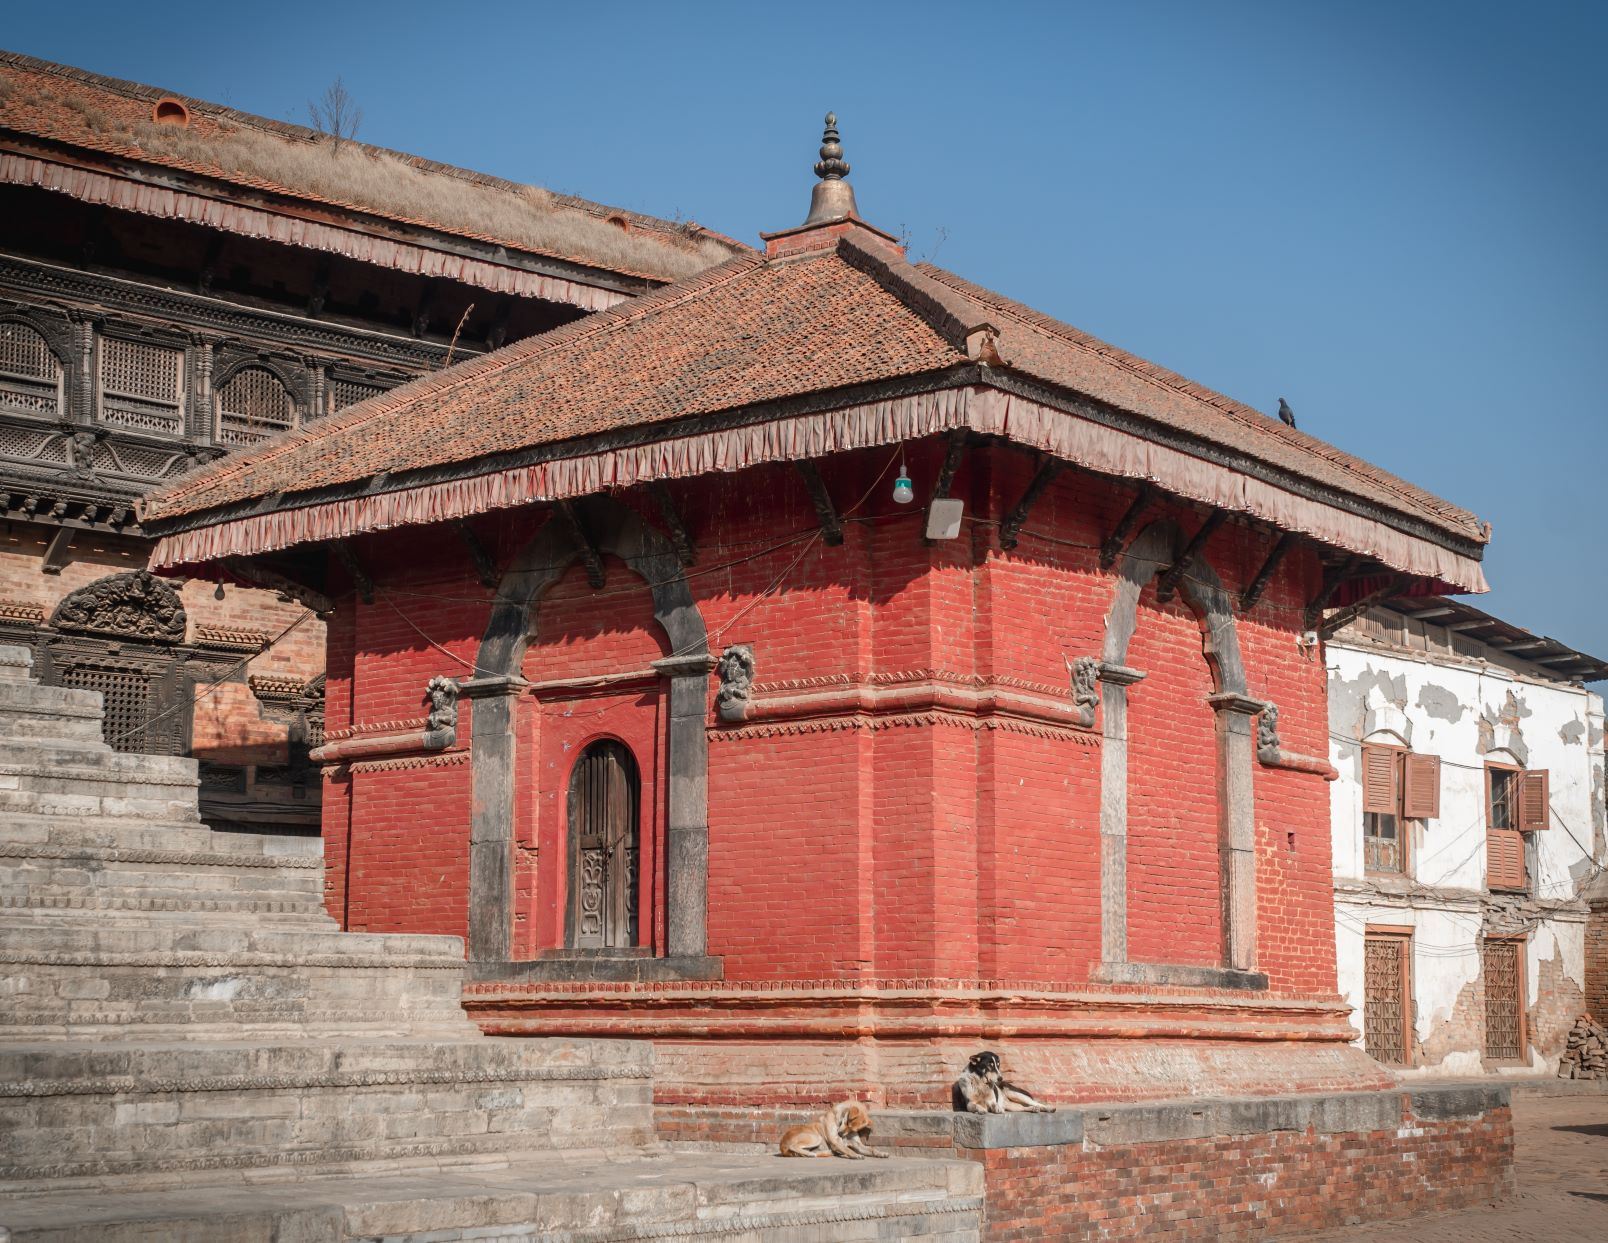 Annapurna ; the red temple of Bhaktapur Durbar Square image